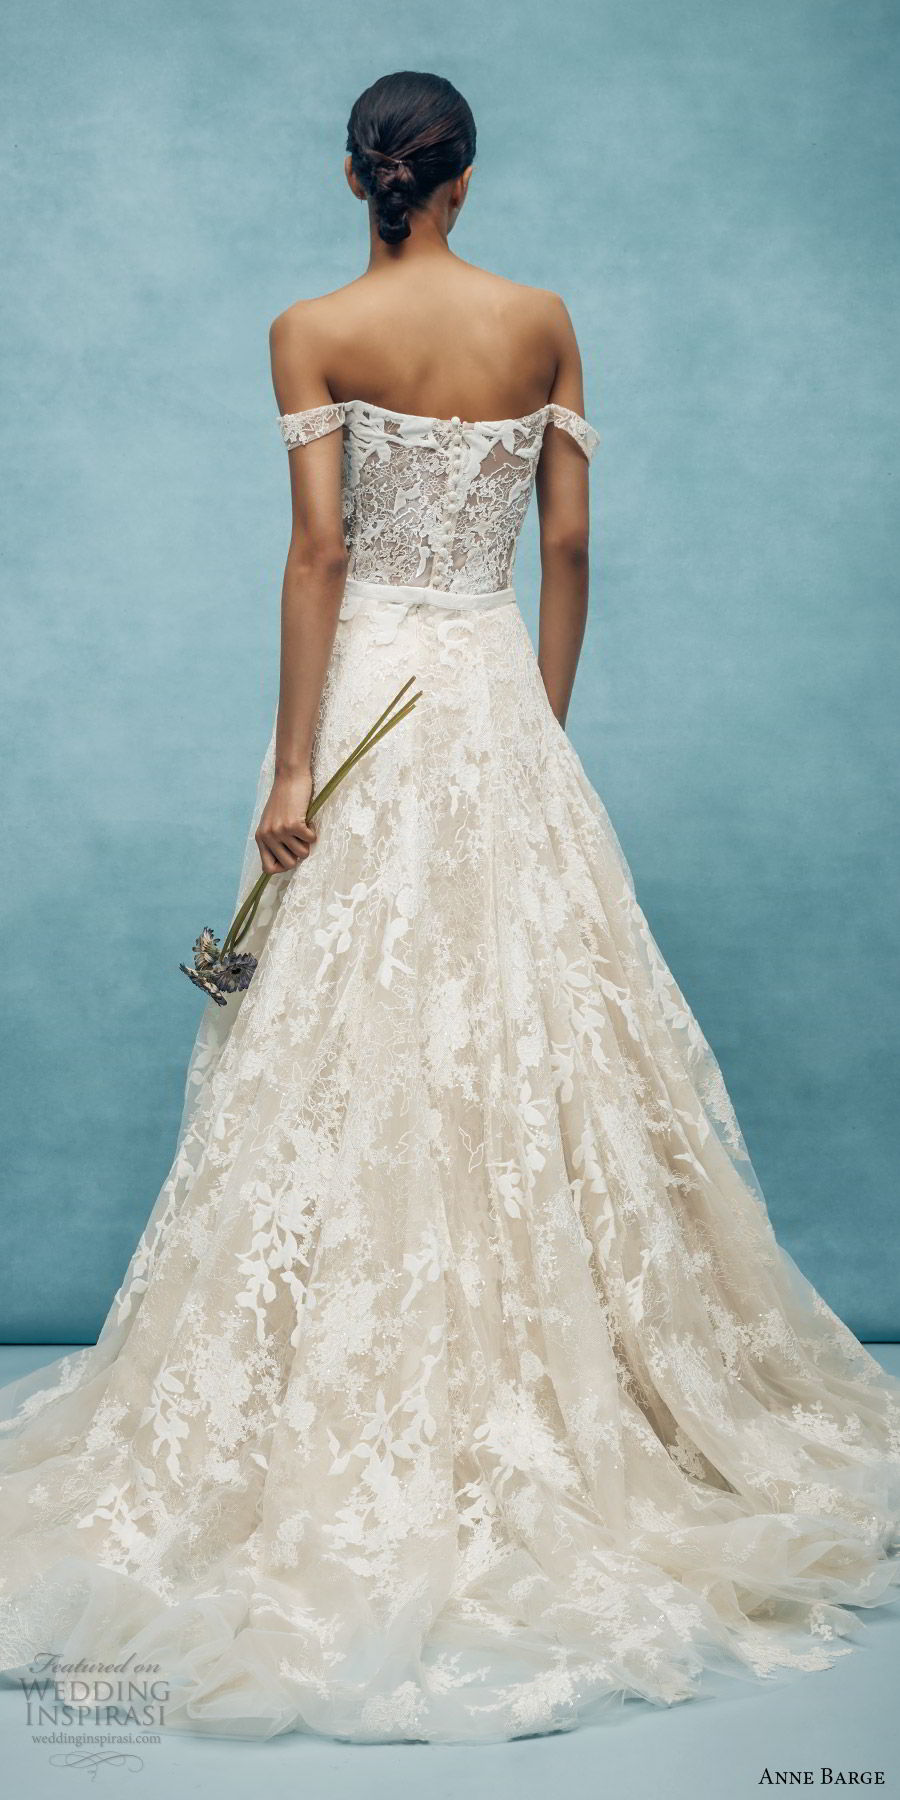 Anne Barge Spring 2020 Wedding Dresses  Wedding Inspirasi